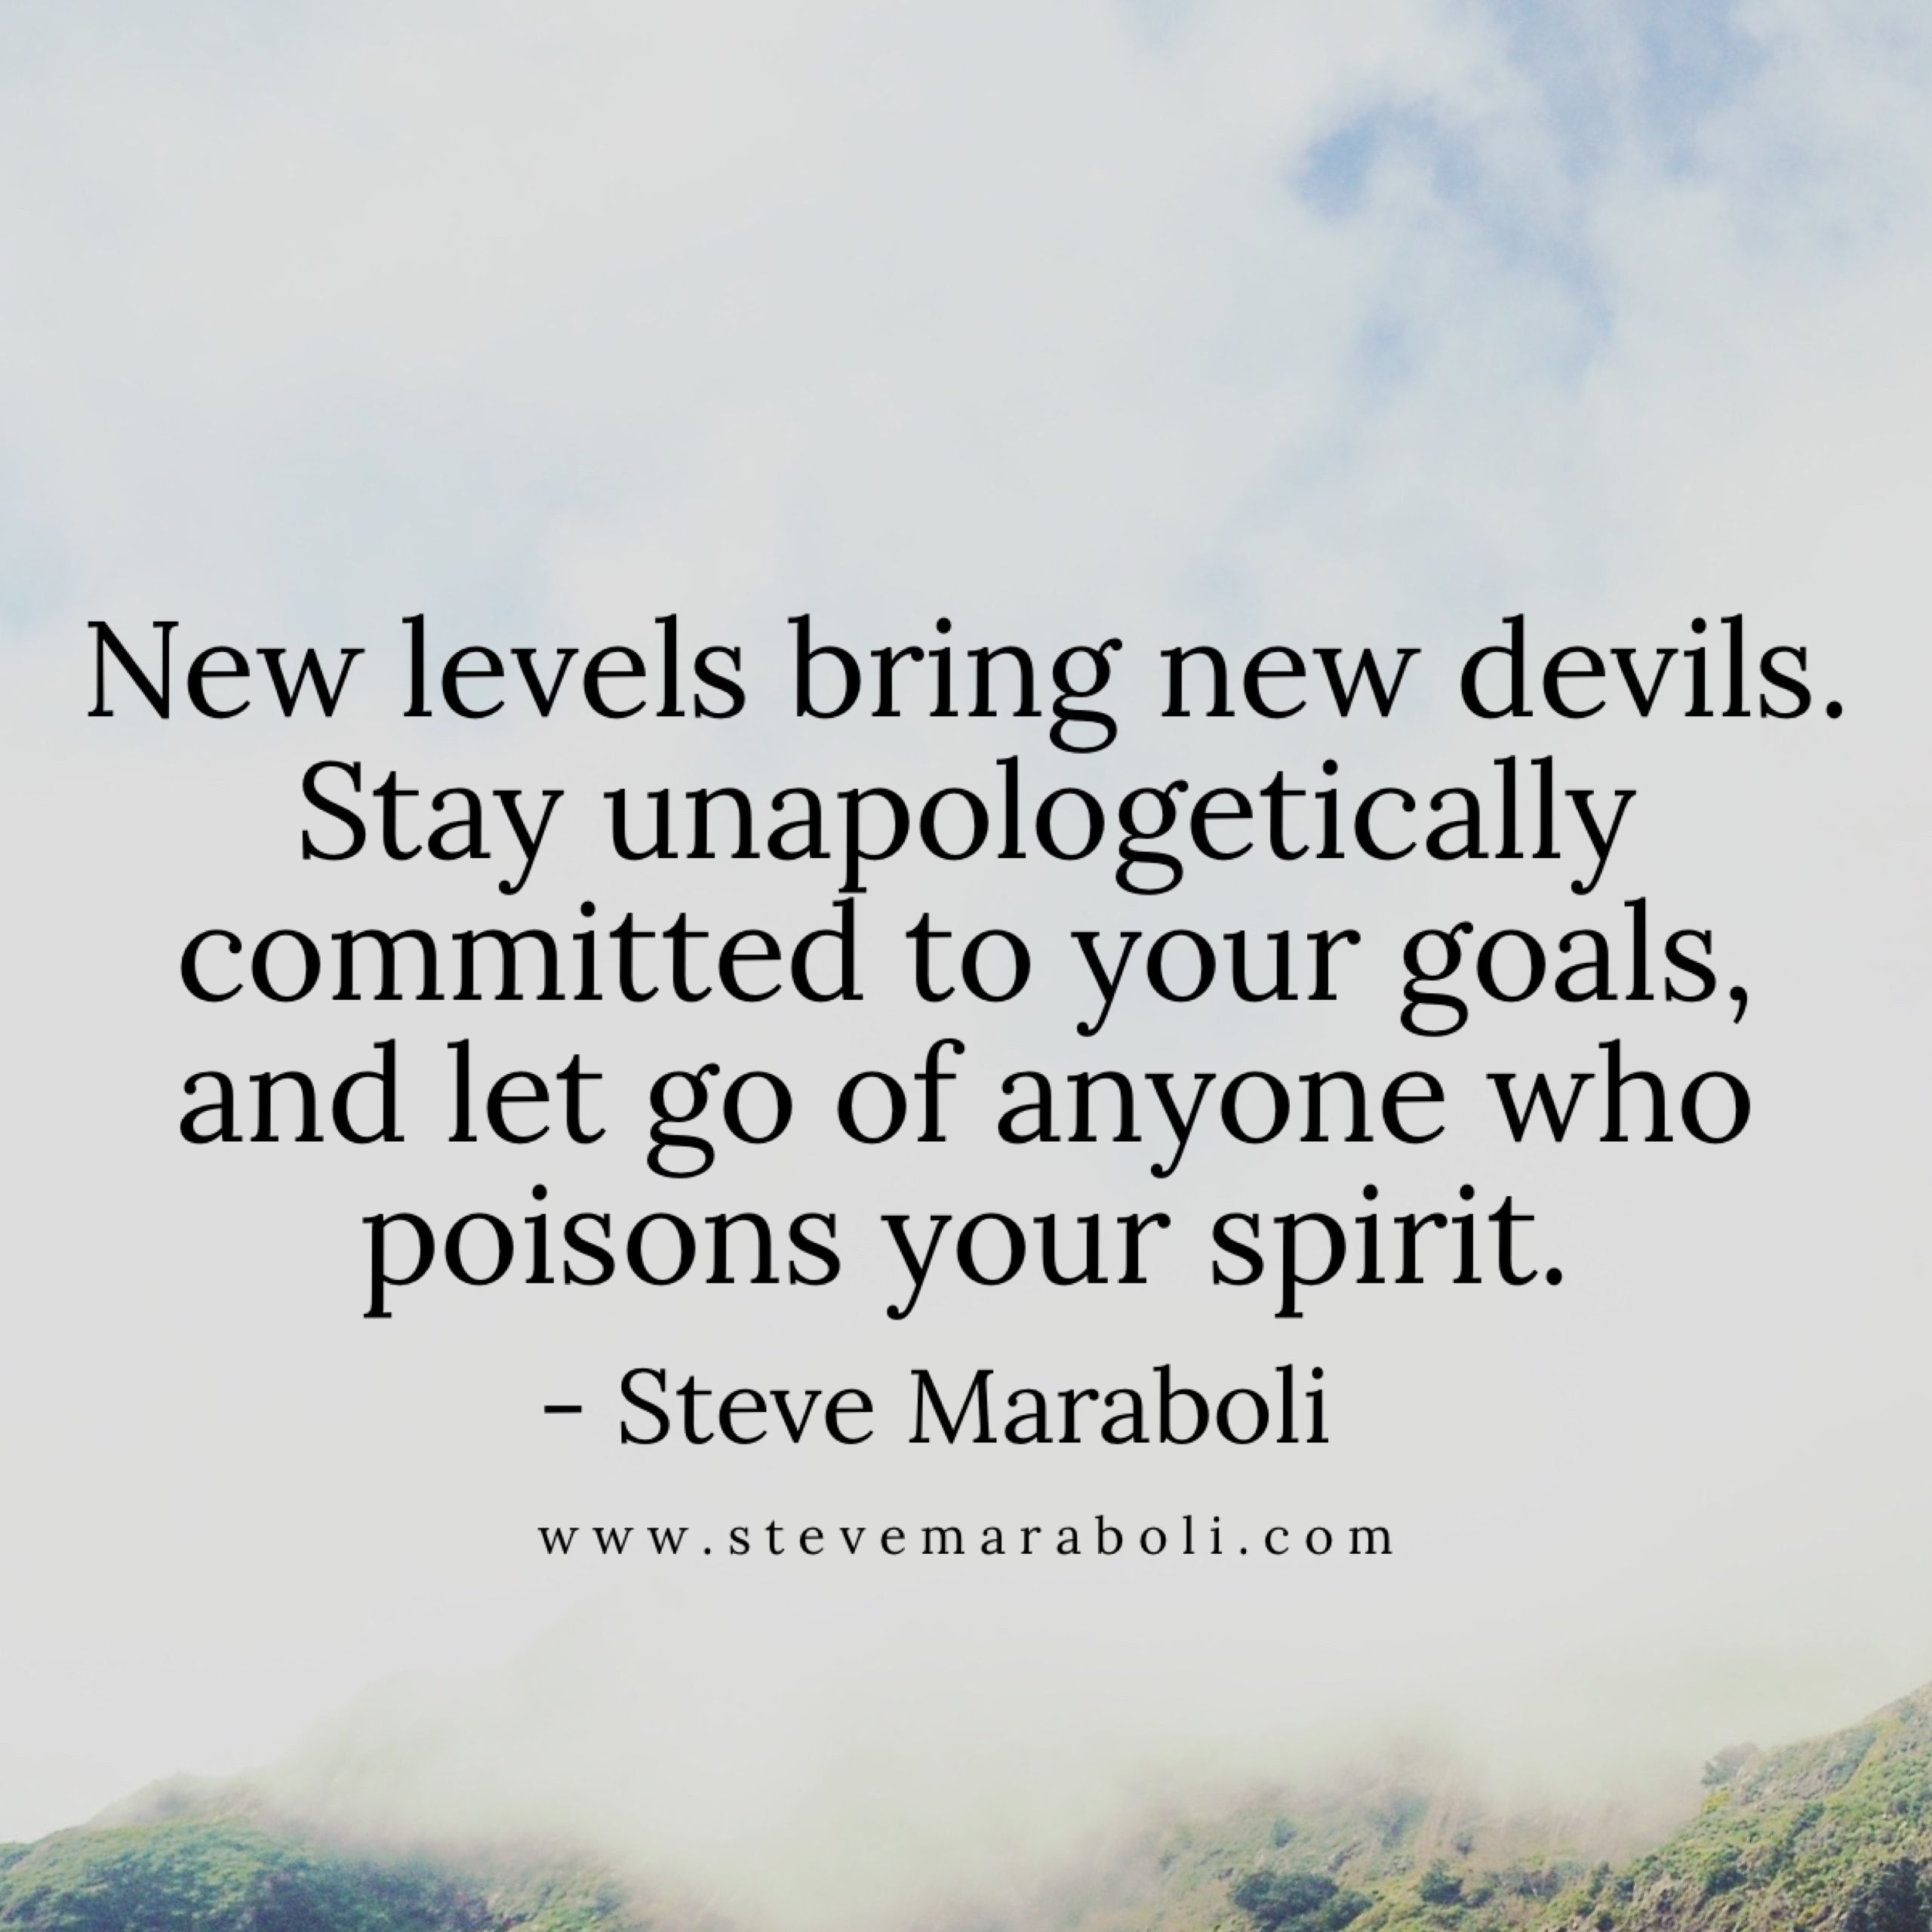 Goal Quotes Dreams And Goals Quotes  Steve Maraboli  Dreams & Goals